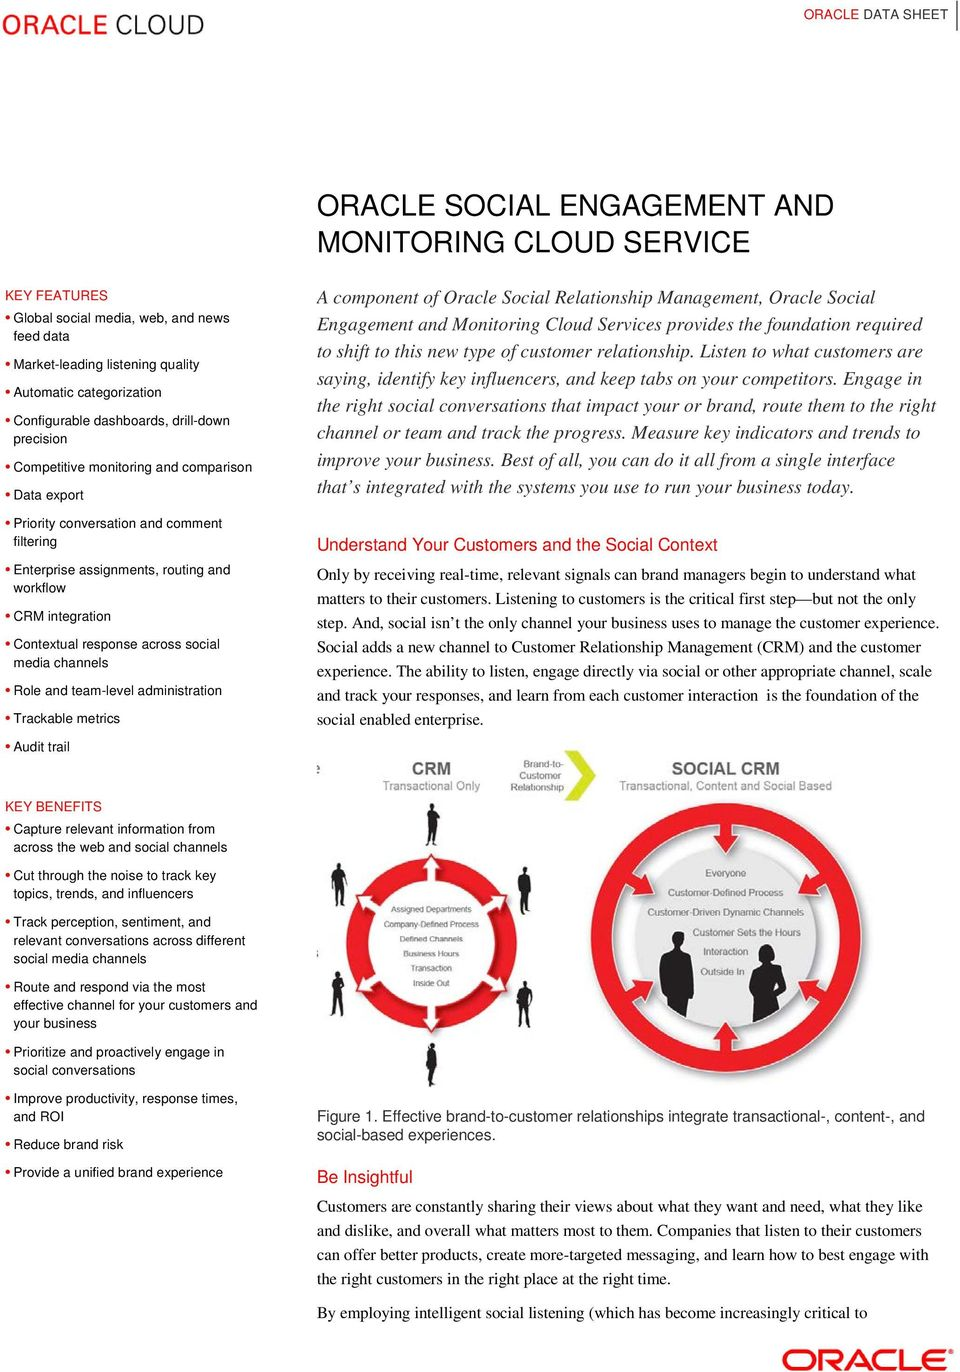 across social media channels Role and team-level administration Trackable metrics A component of Oracle Social Relationship Management, Oracle Social Engagement and Monitoring Cloud Services provides